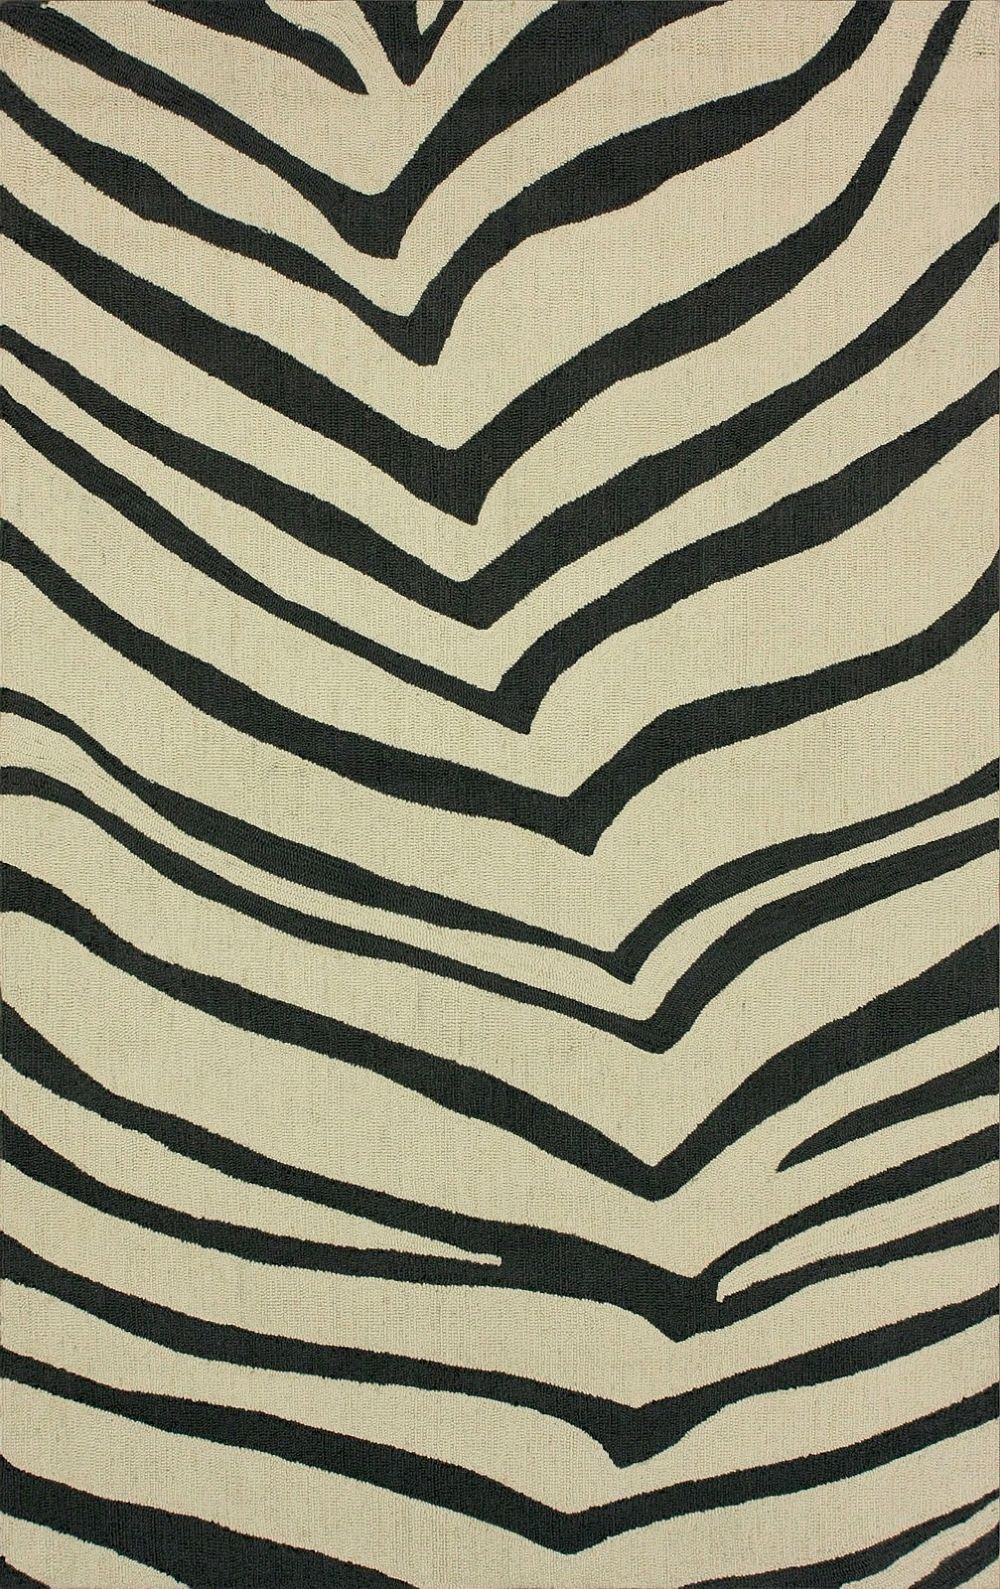 nuloom grace animal inspirations area rug collection